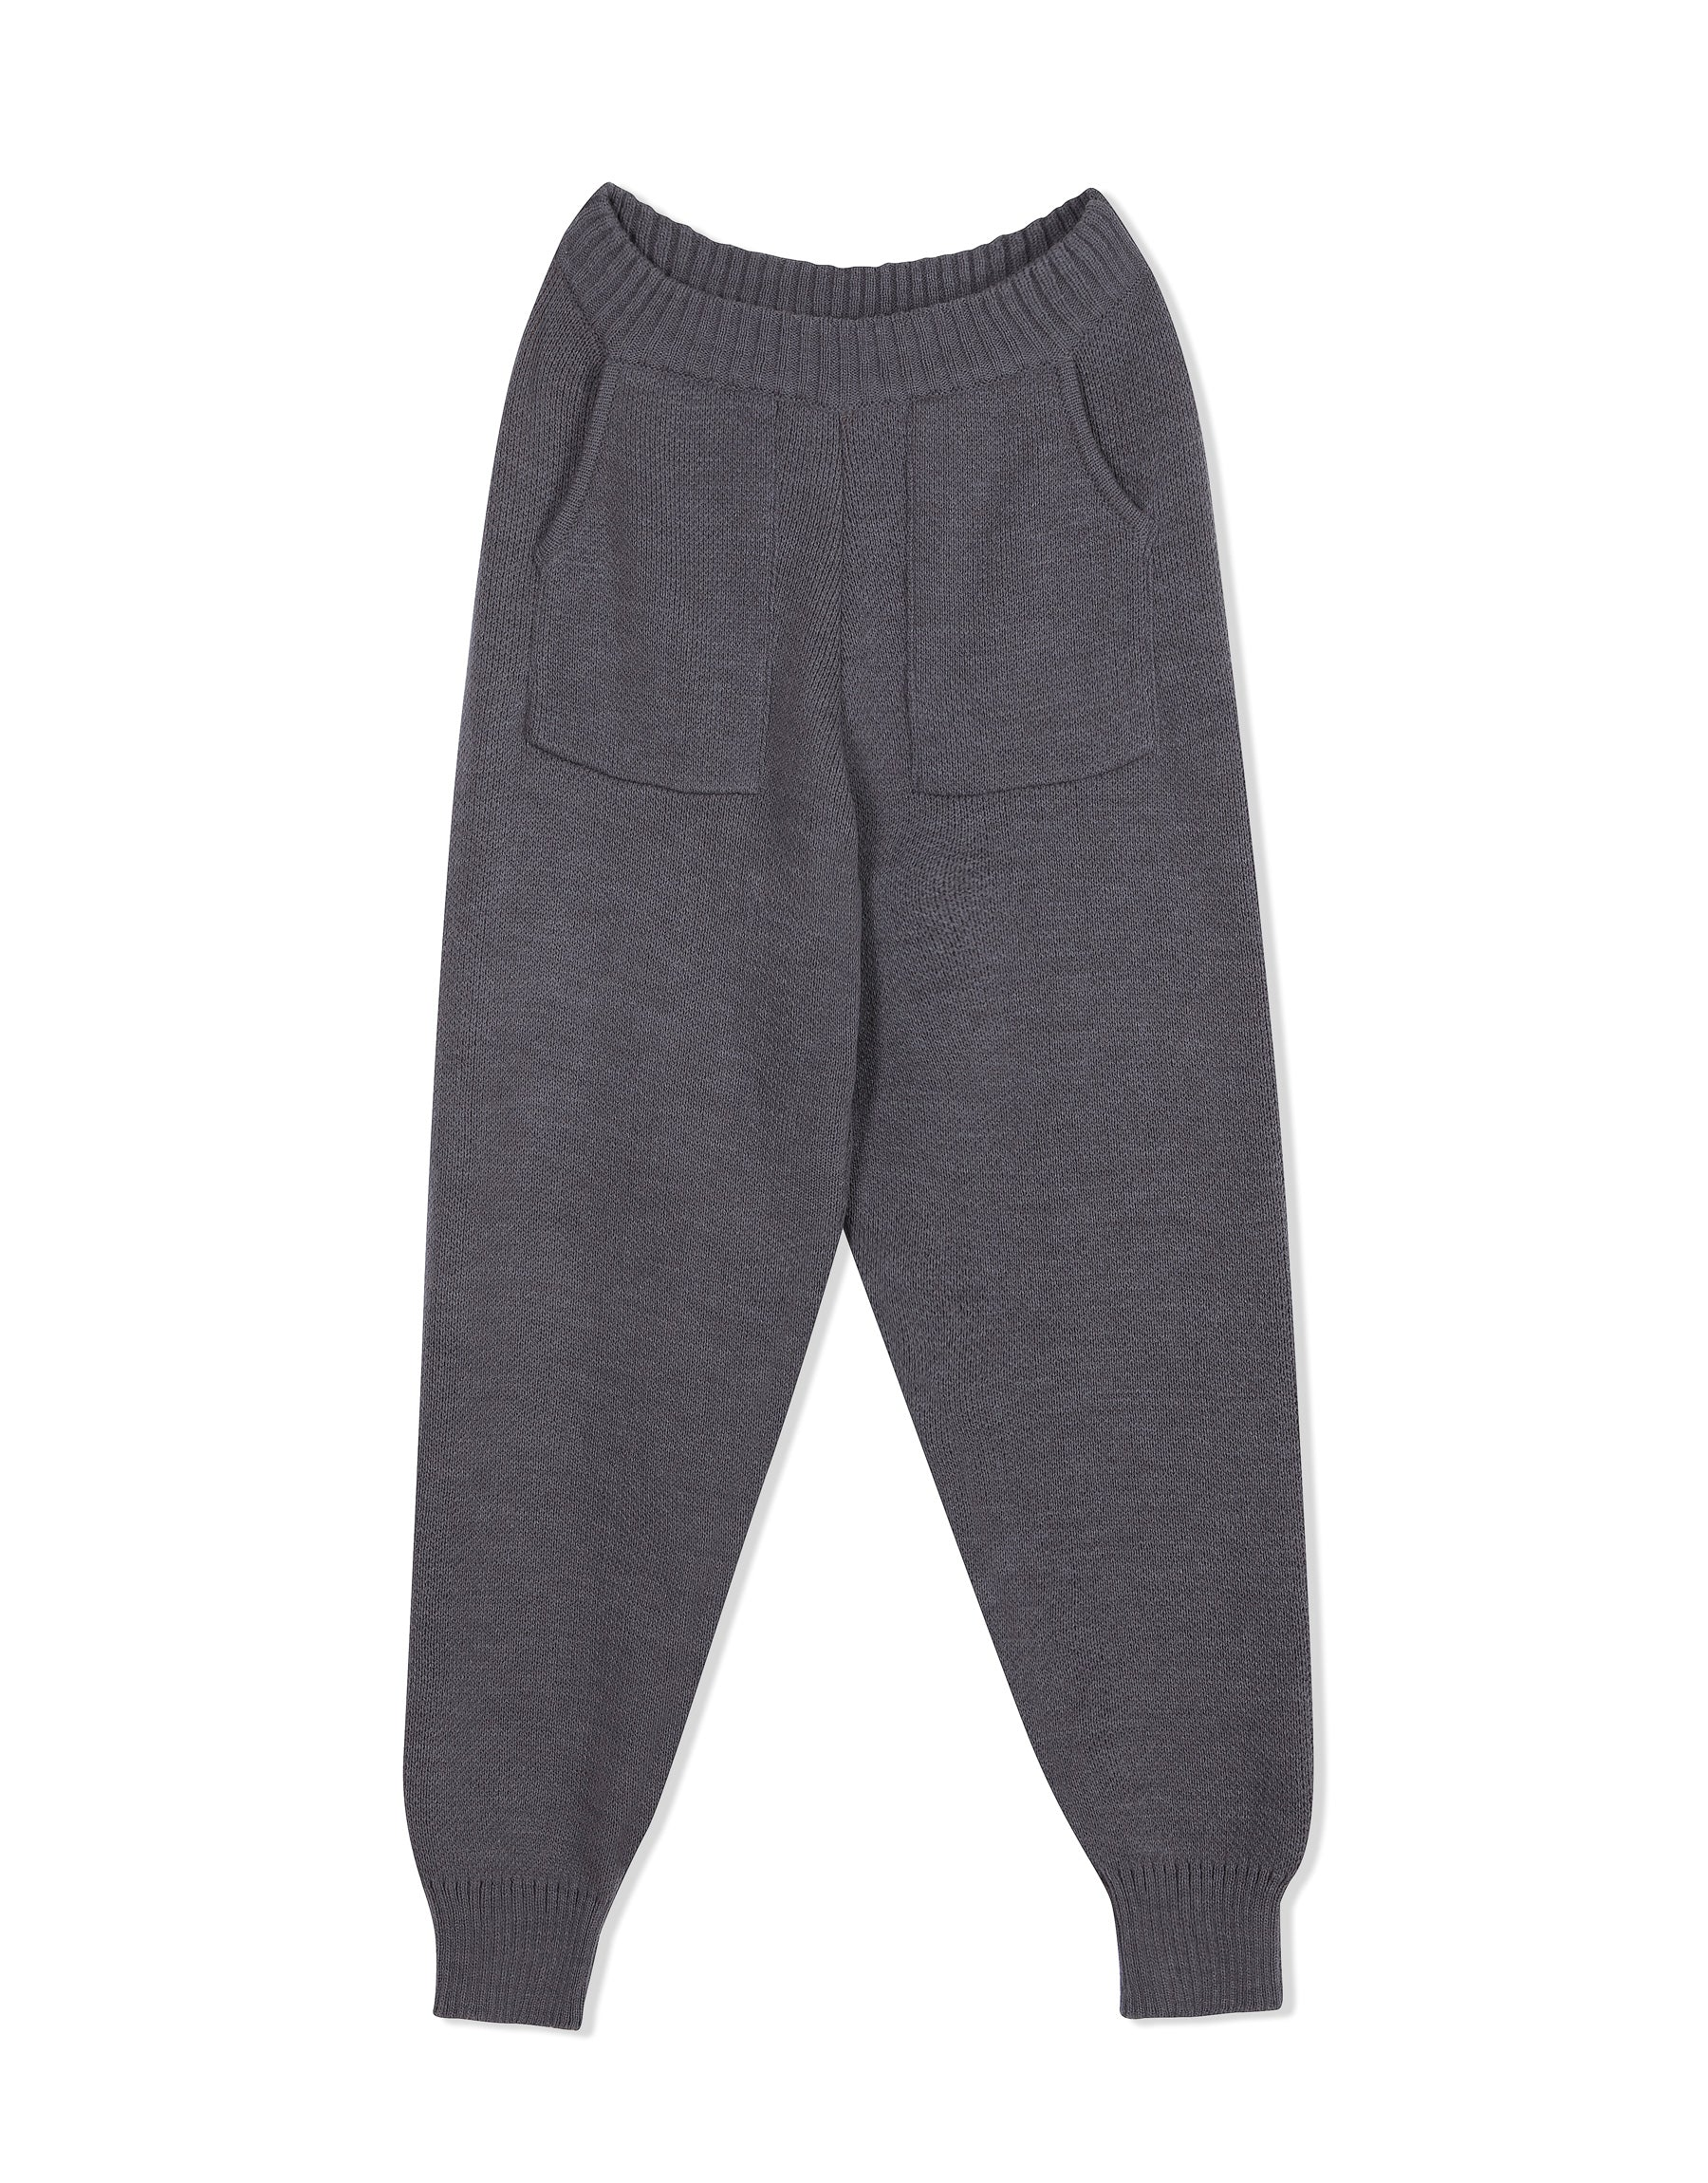 Knitwear from KVDWKND, Track Pants in grey. New by Kat van Duinen.